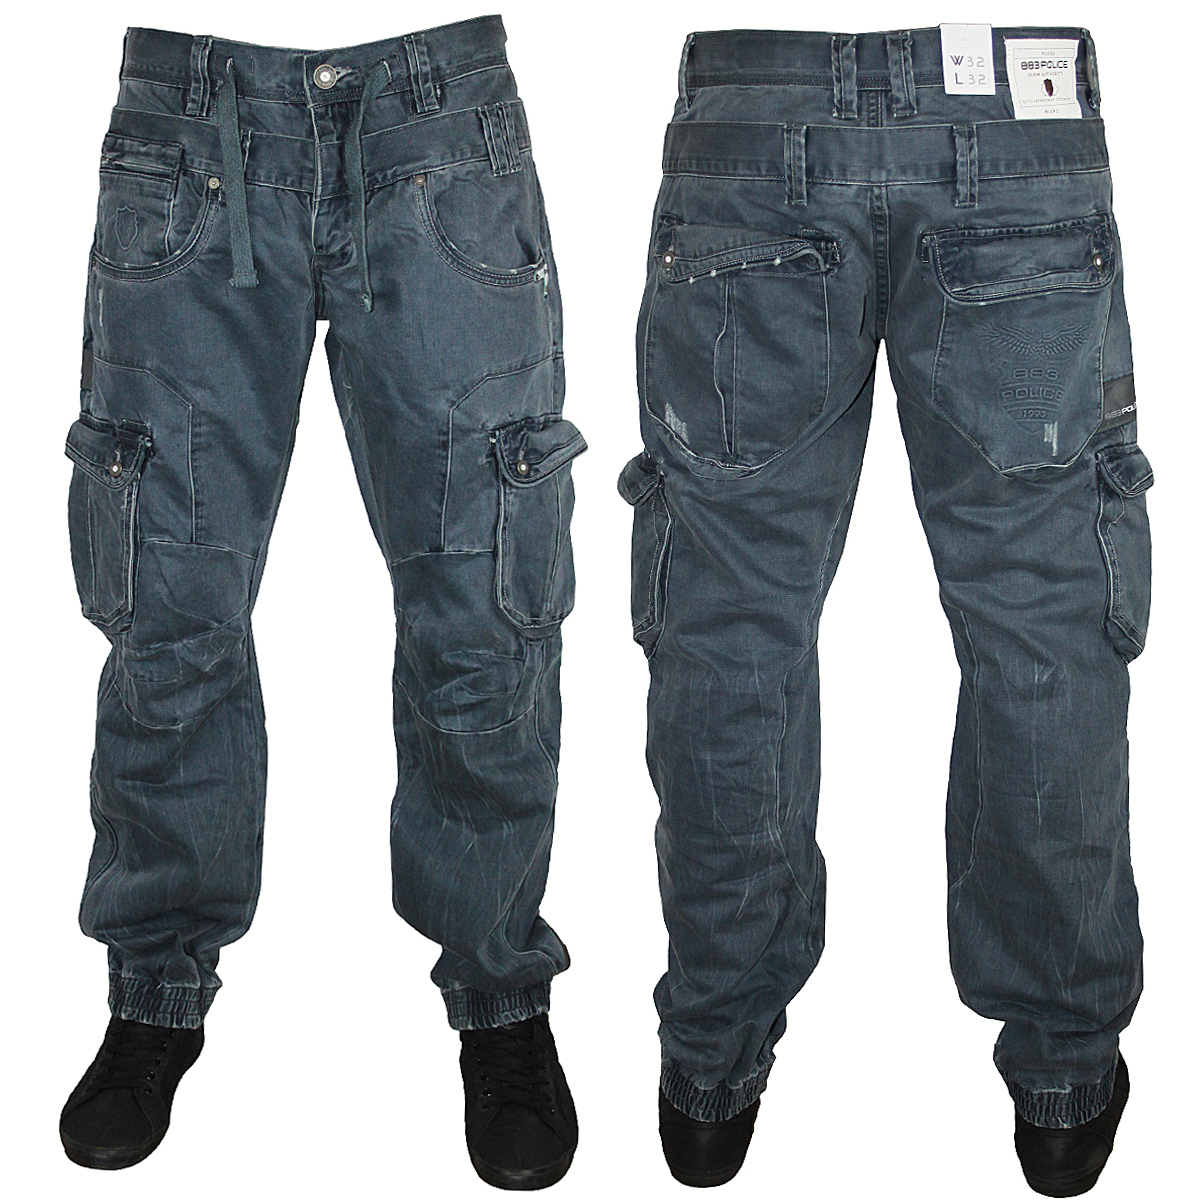 NEW MENS BLUE 883 POLICE KALUGA TAPERED CUFFED CARGO JEANS ALL ...